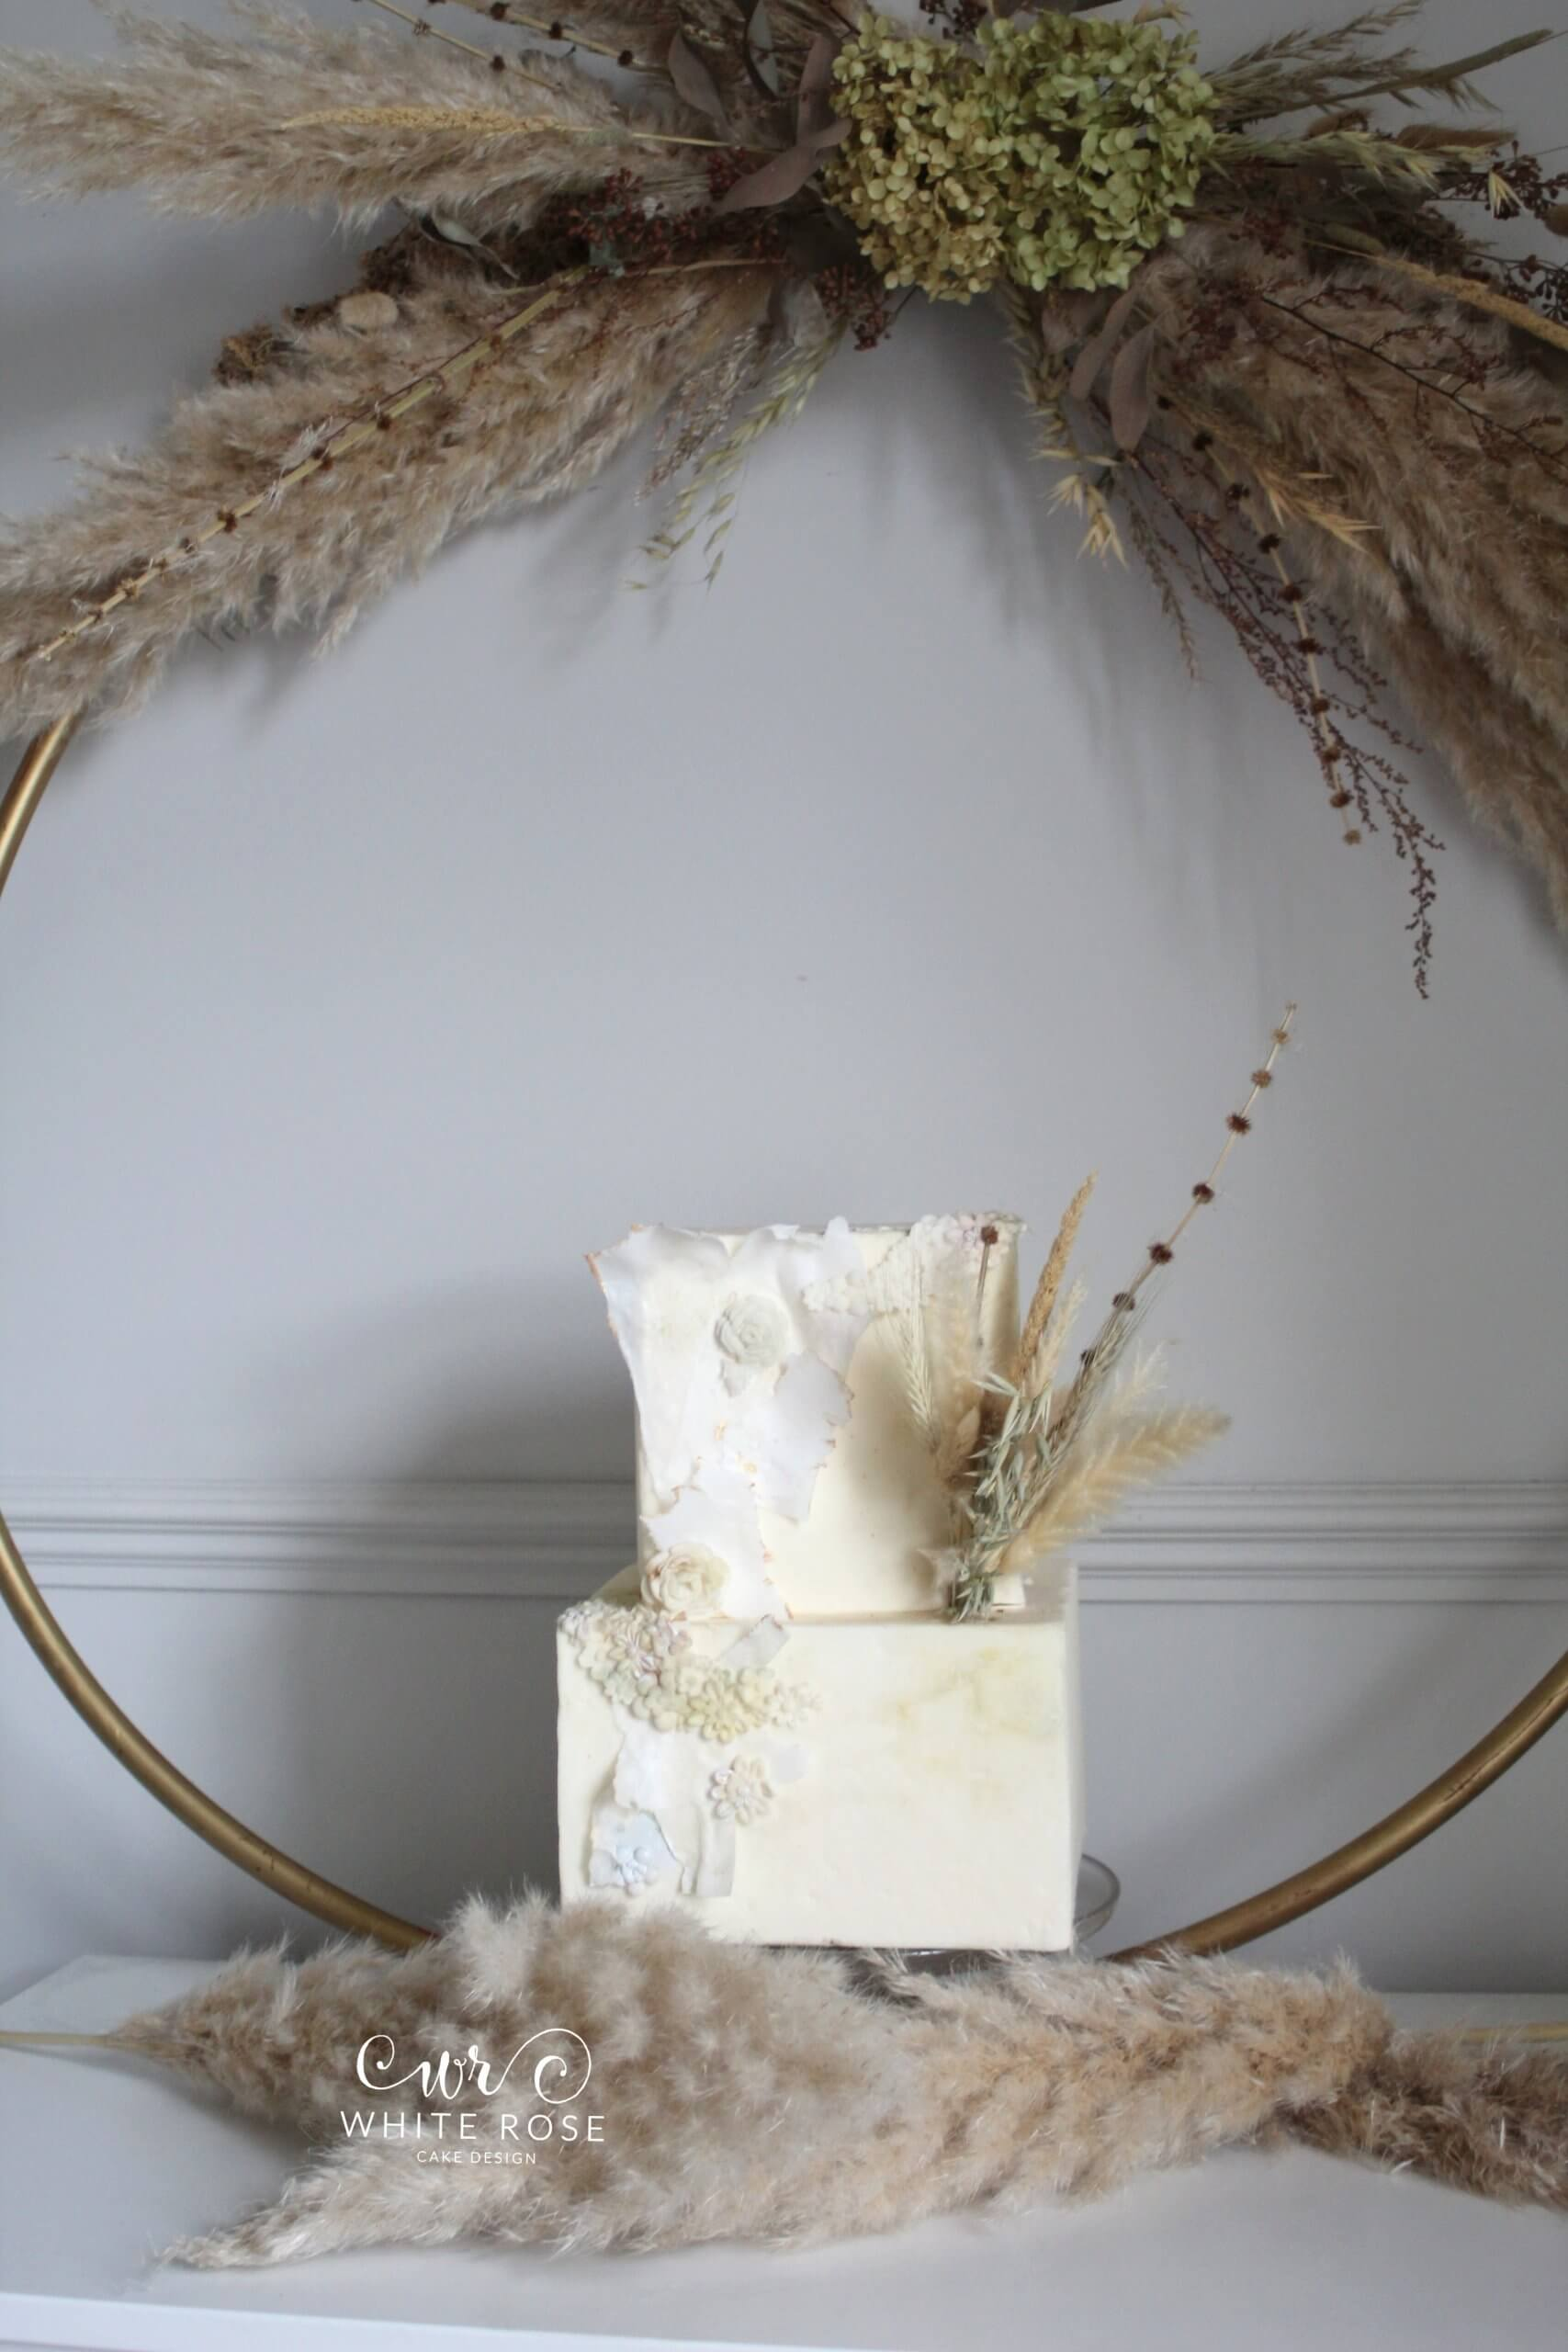 Two Tier Dried Flower Wedding Cake by White Rose Cake Design in West Yorkshire